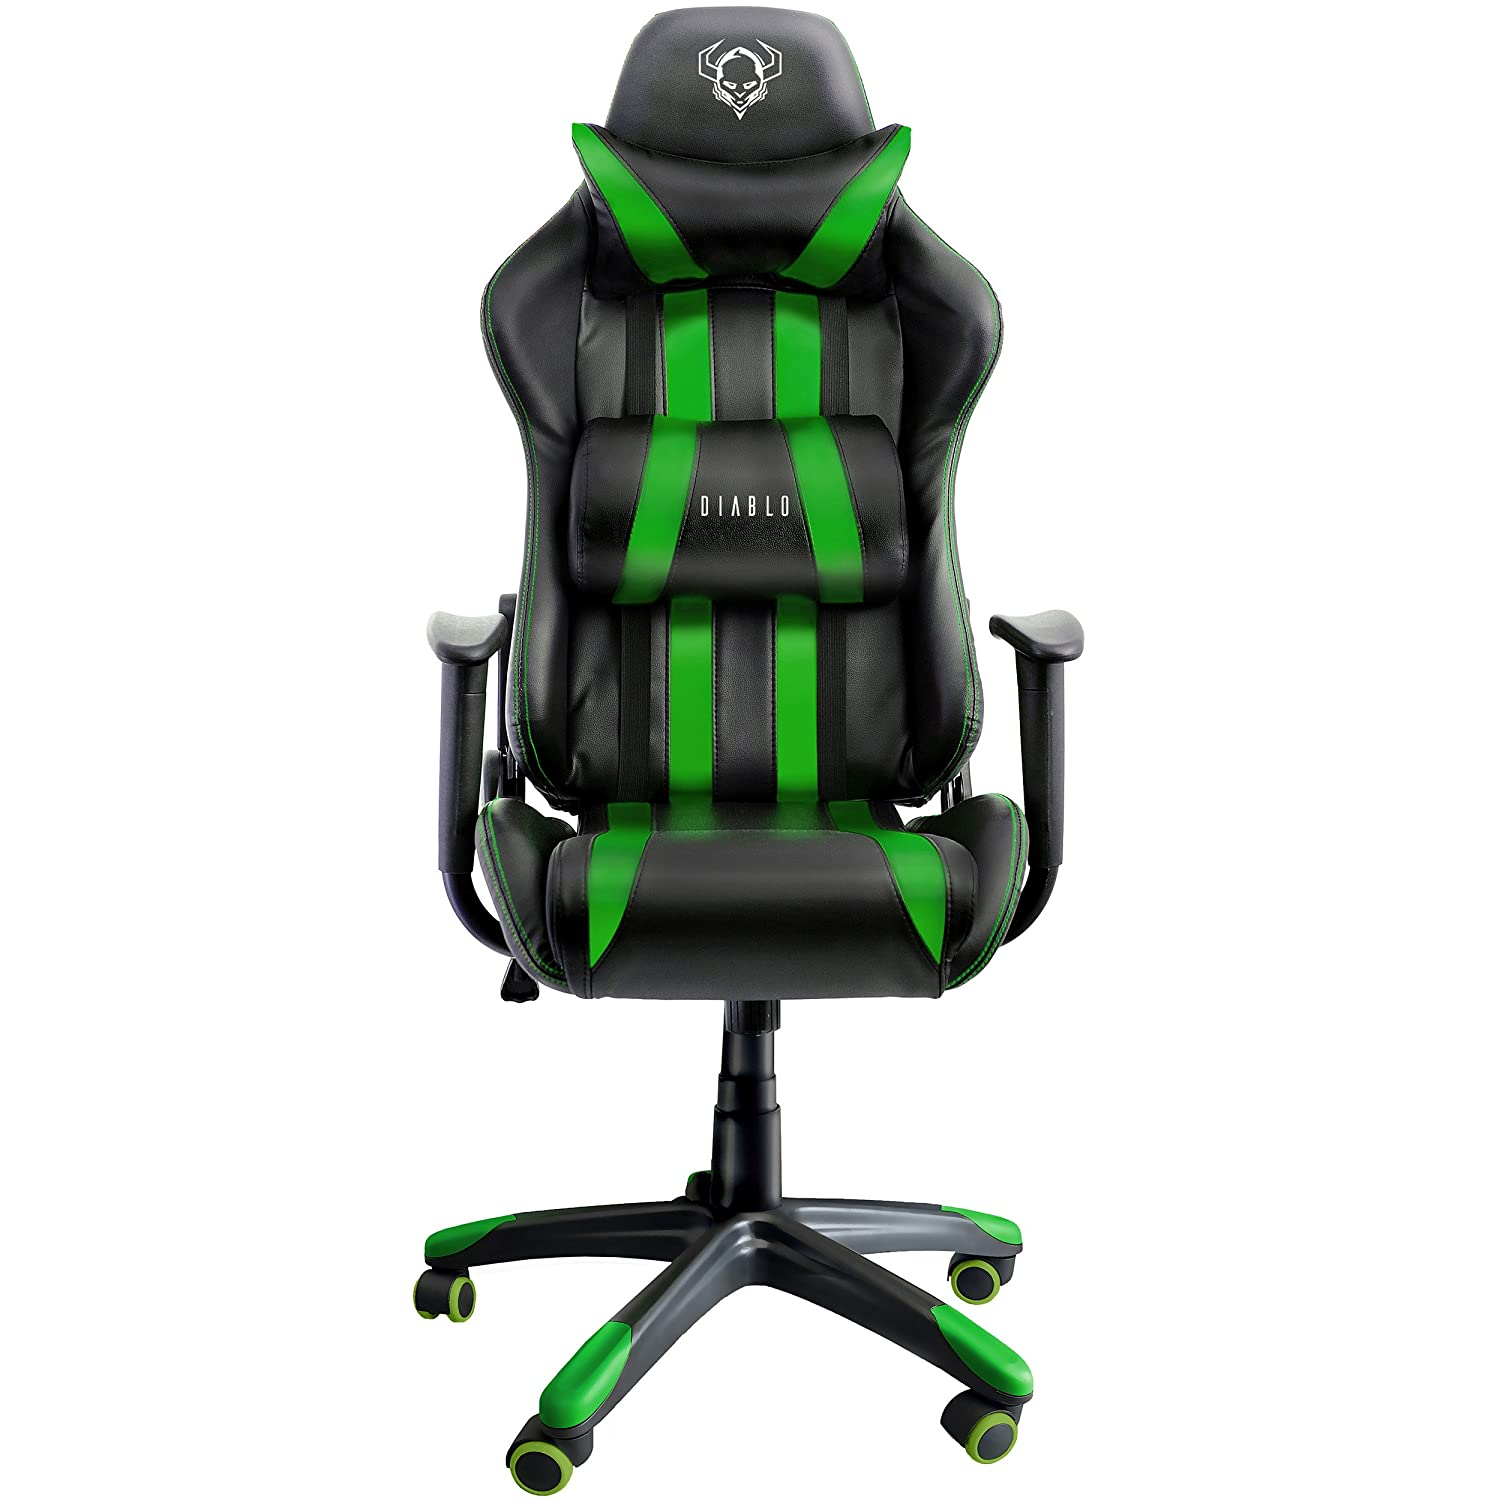 Diablo X e Sedia da Gaming Sedia Scrivania Sedi di gioco Racing Gaming Chair nero verde Amazon Casa e cucina